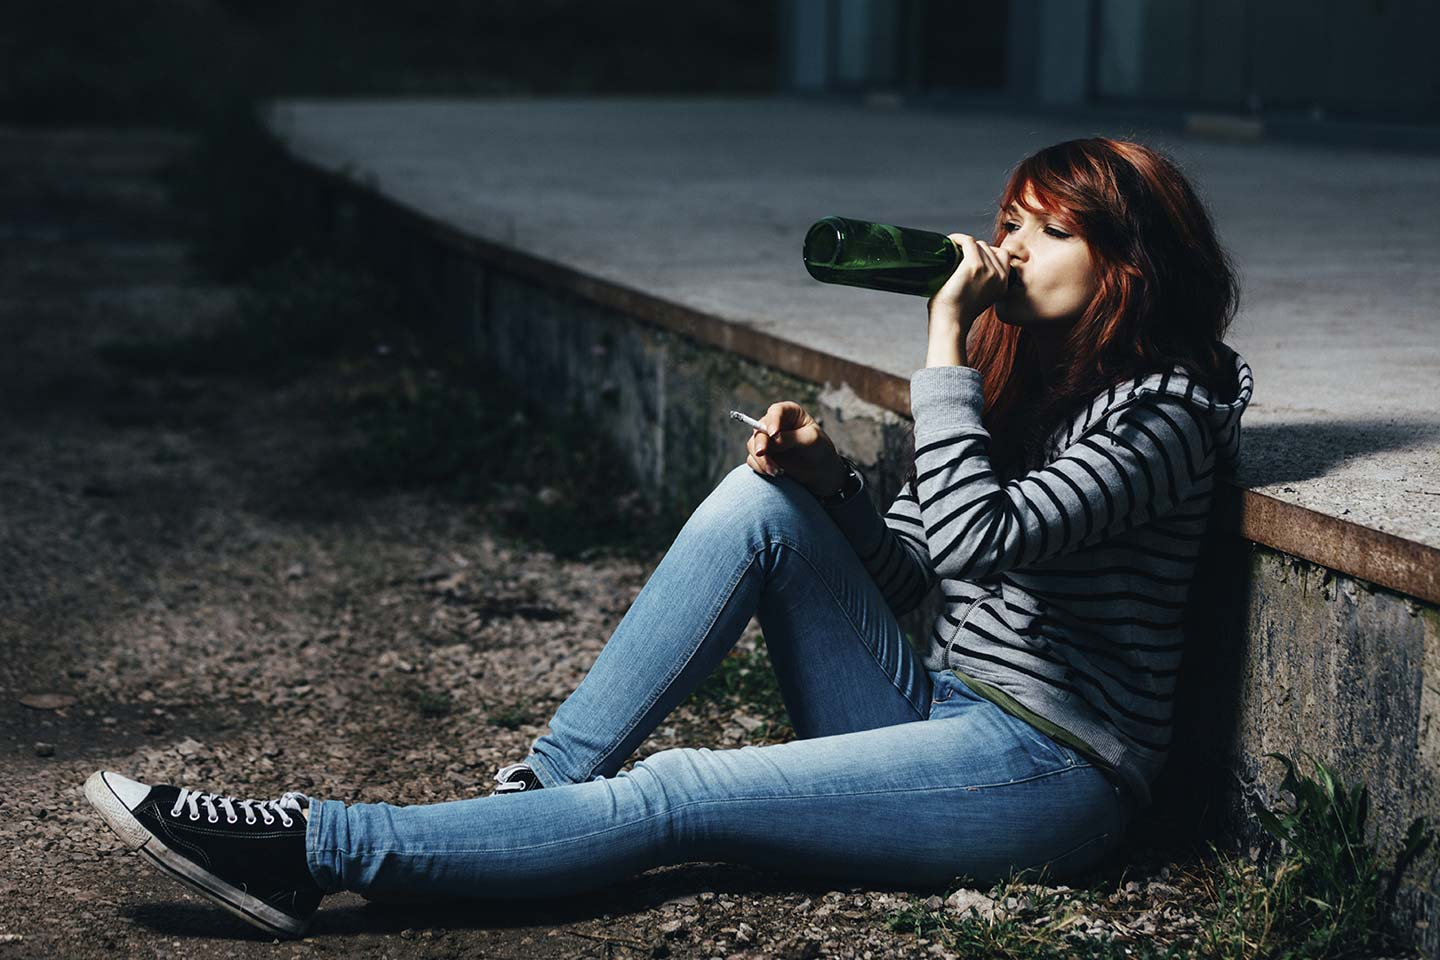 Teen Substance Abuse Amp Addiction Warning Signs Amp Effects